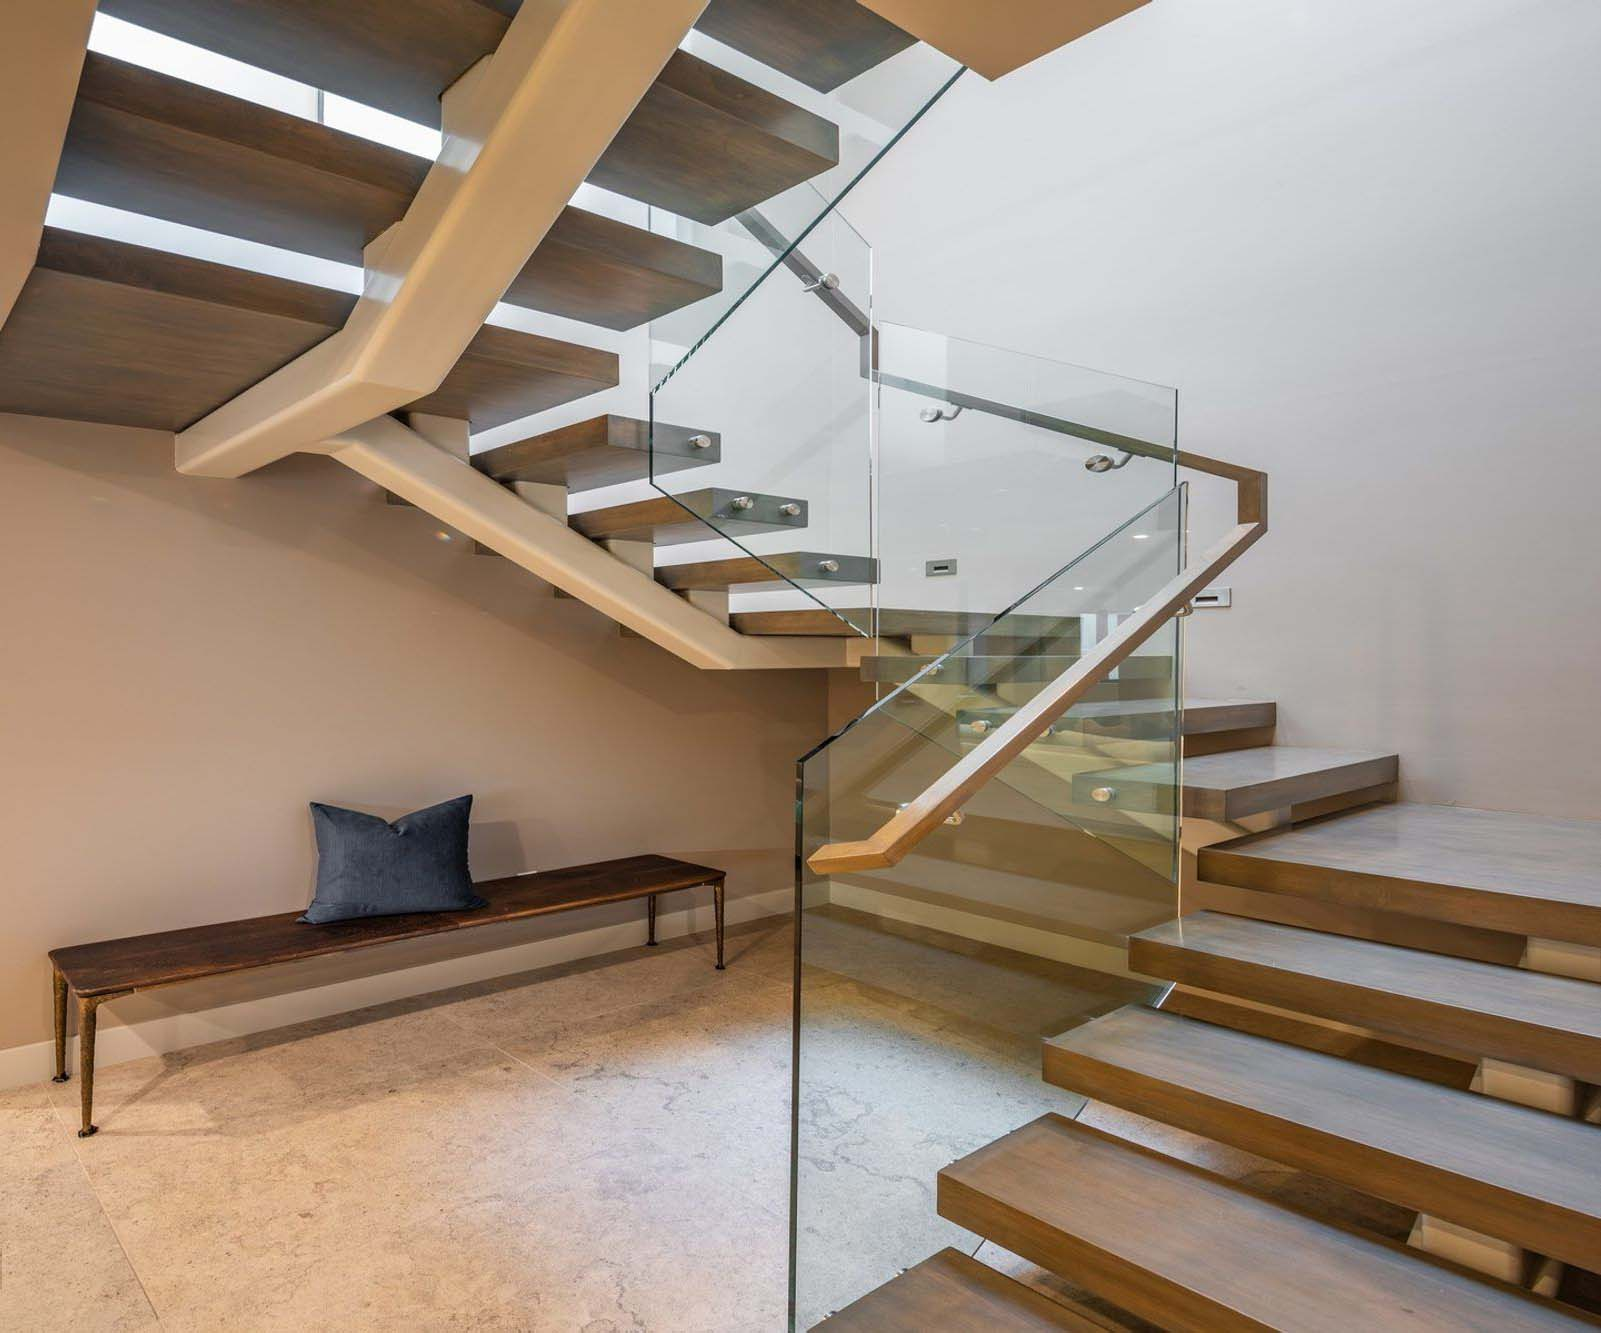 Modern staircase with center steel backbone. Wood steps and glass railings with wood handrail.